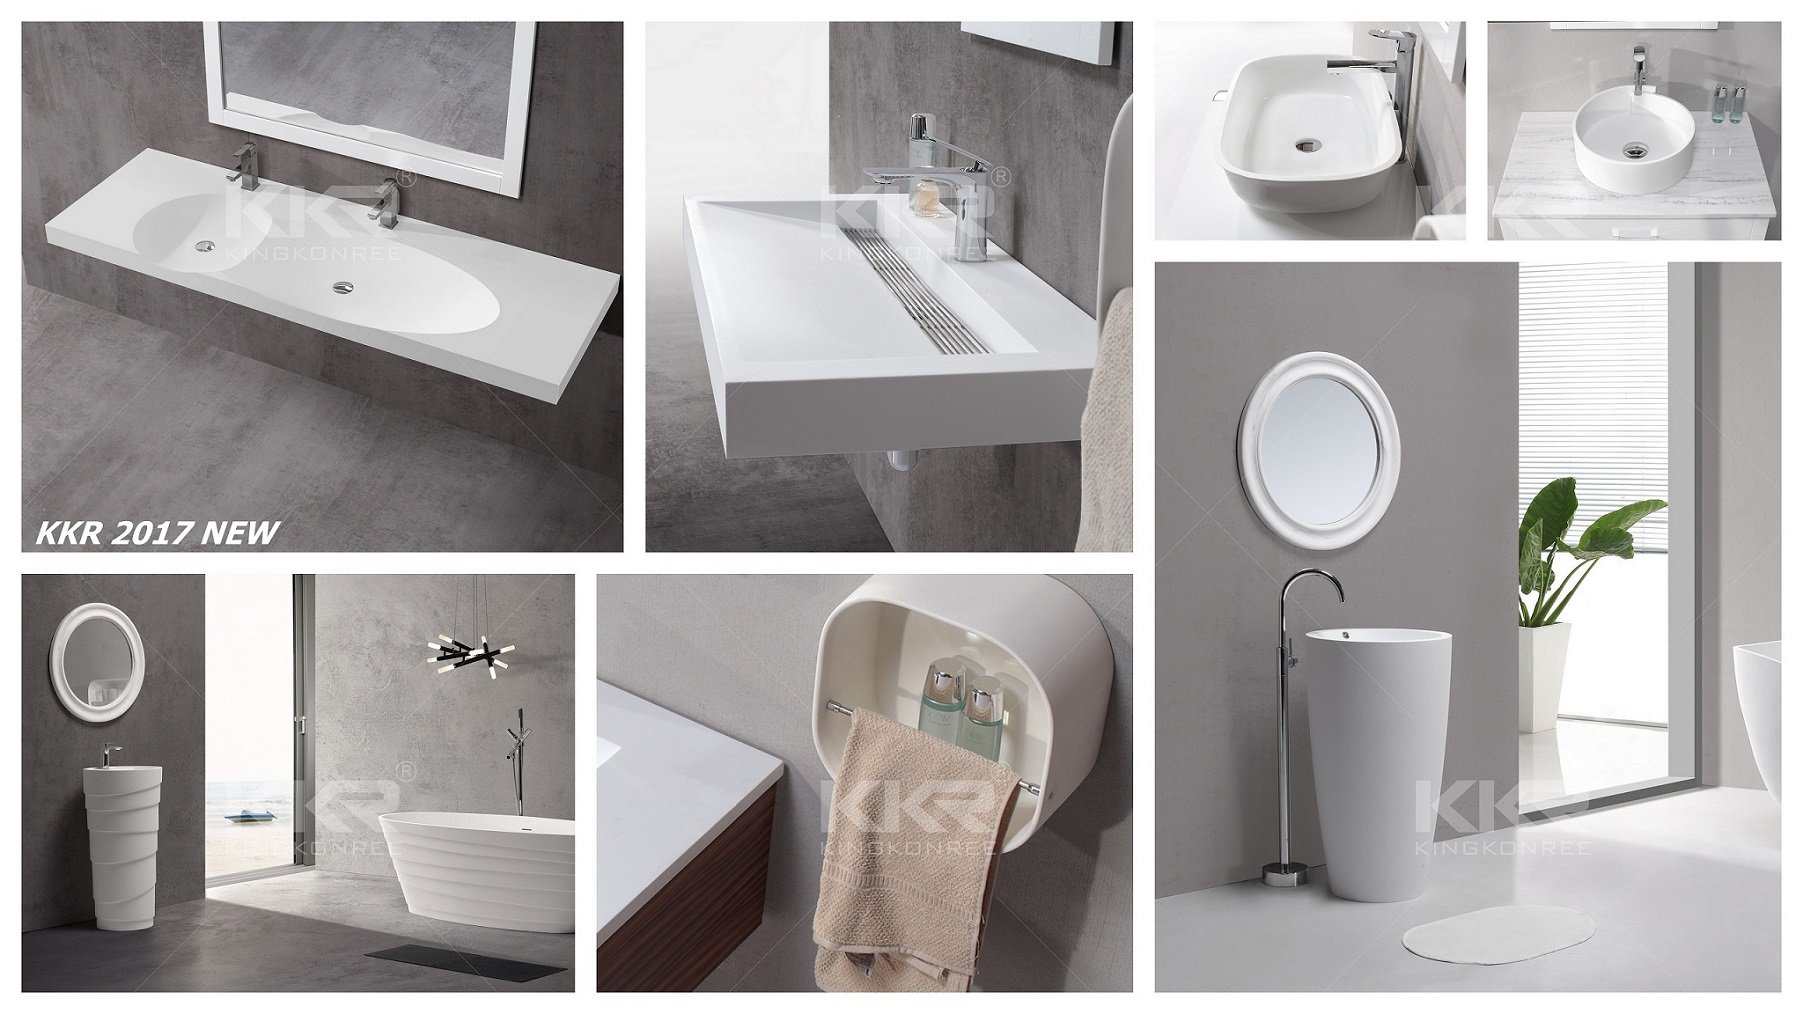 Comparison Of Solid Surface Bathroom Sinks Ceramic Basins